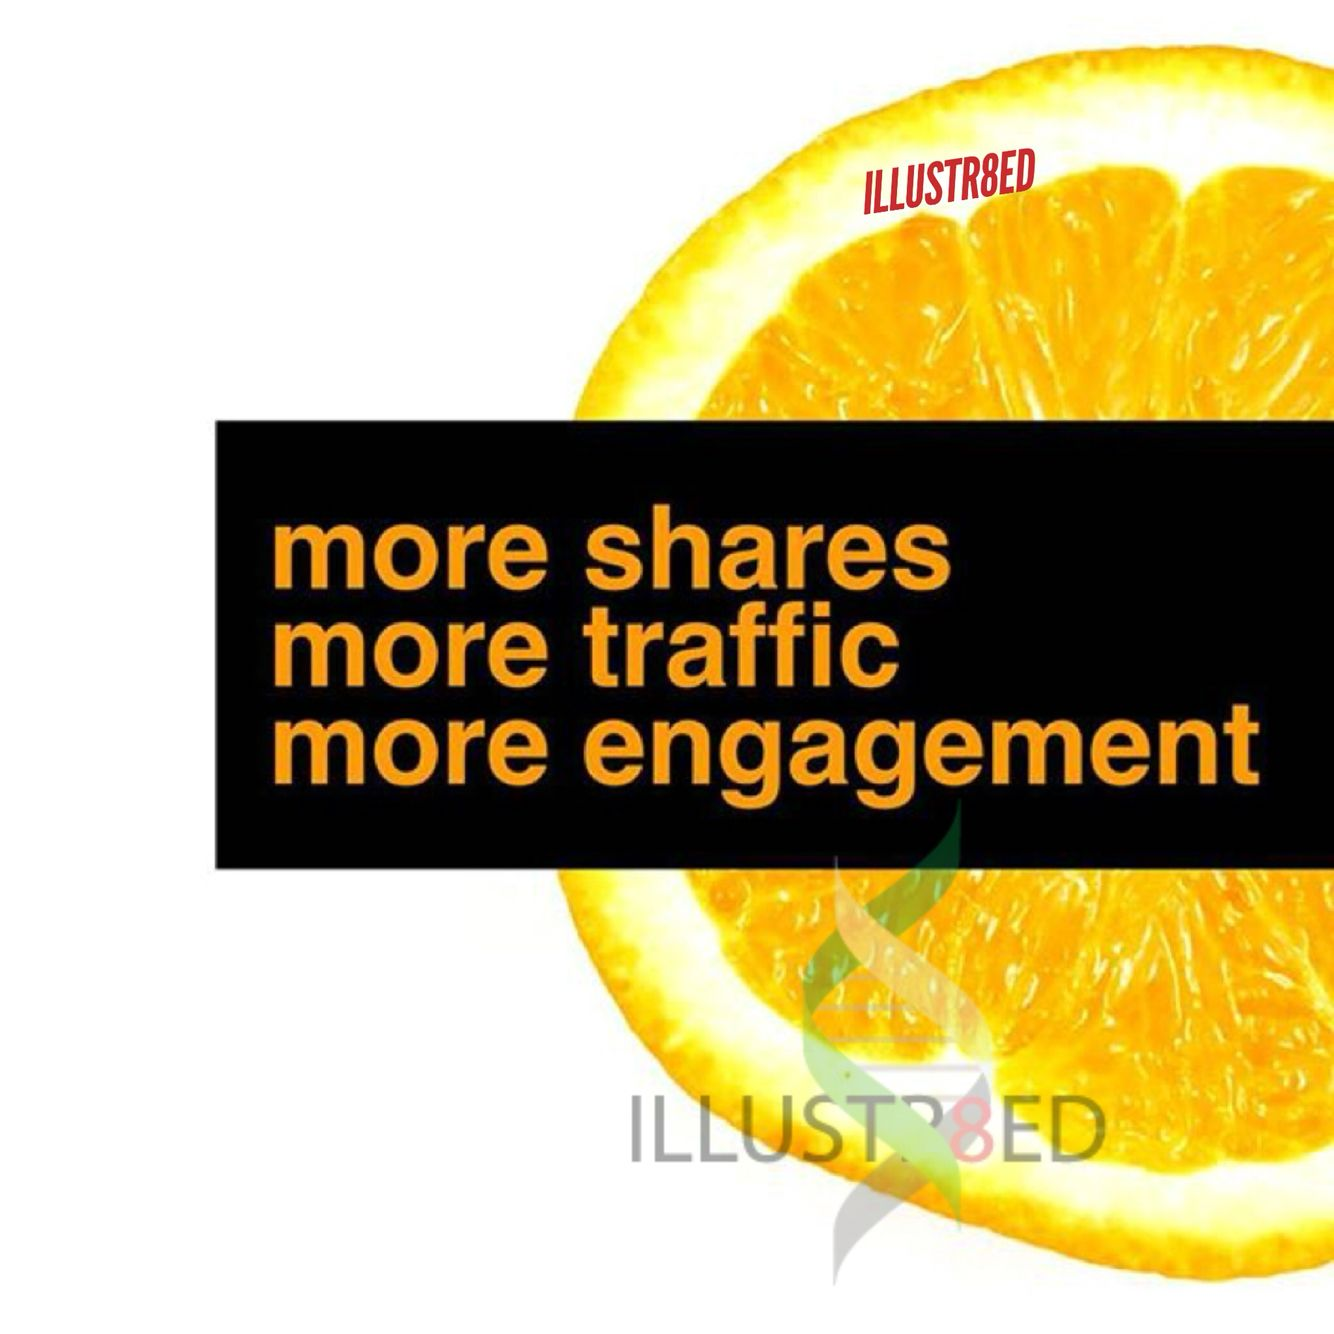 "Power of shares, traffic and engagement  ▃▃▃▃▃▃▃▃▃▃▃▃▃▃▃▃▃▃▃▃ Don't be Anti-social... Get Social with us! FB - facebook.com/illustr8ed.ca Twitter - Twitter.com/illustr8ed_ca Instagram- @illustr8ed.ca LinkedIn - https://ca.linkedin.com/in/illustr8edca Pinterest - www.pinterest.com/illustr8edca  Check us out online at www.illustr8ed.ca  illustr8ed.ca@gmail.com  ""Cre8ivity is in our DNA"""